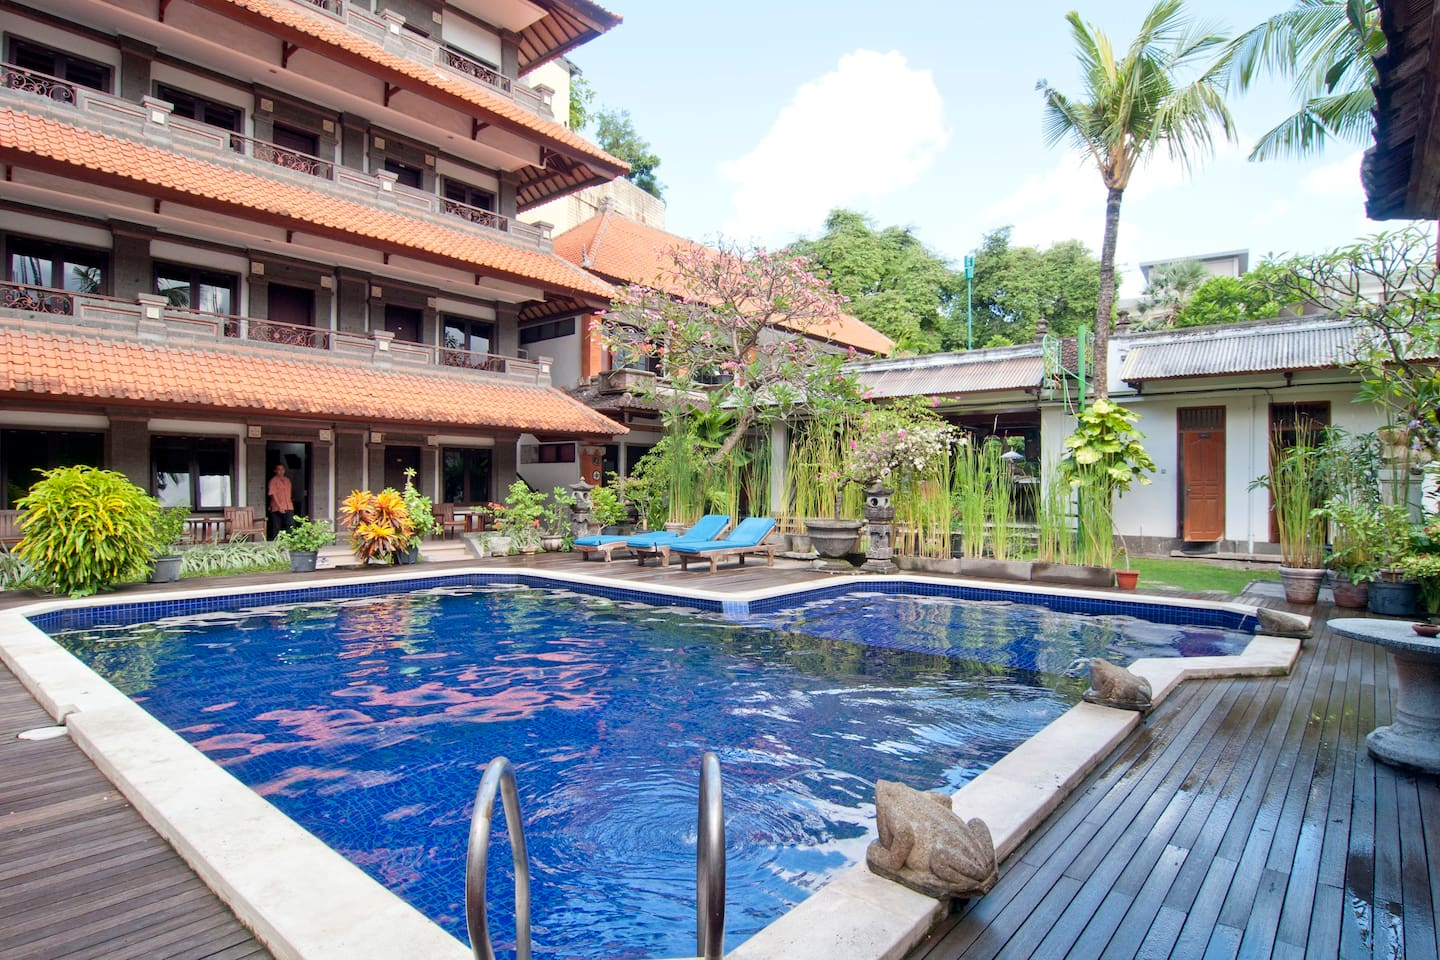 Affordable stay in Kuta/Bali